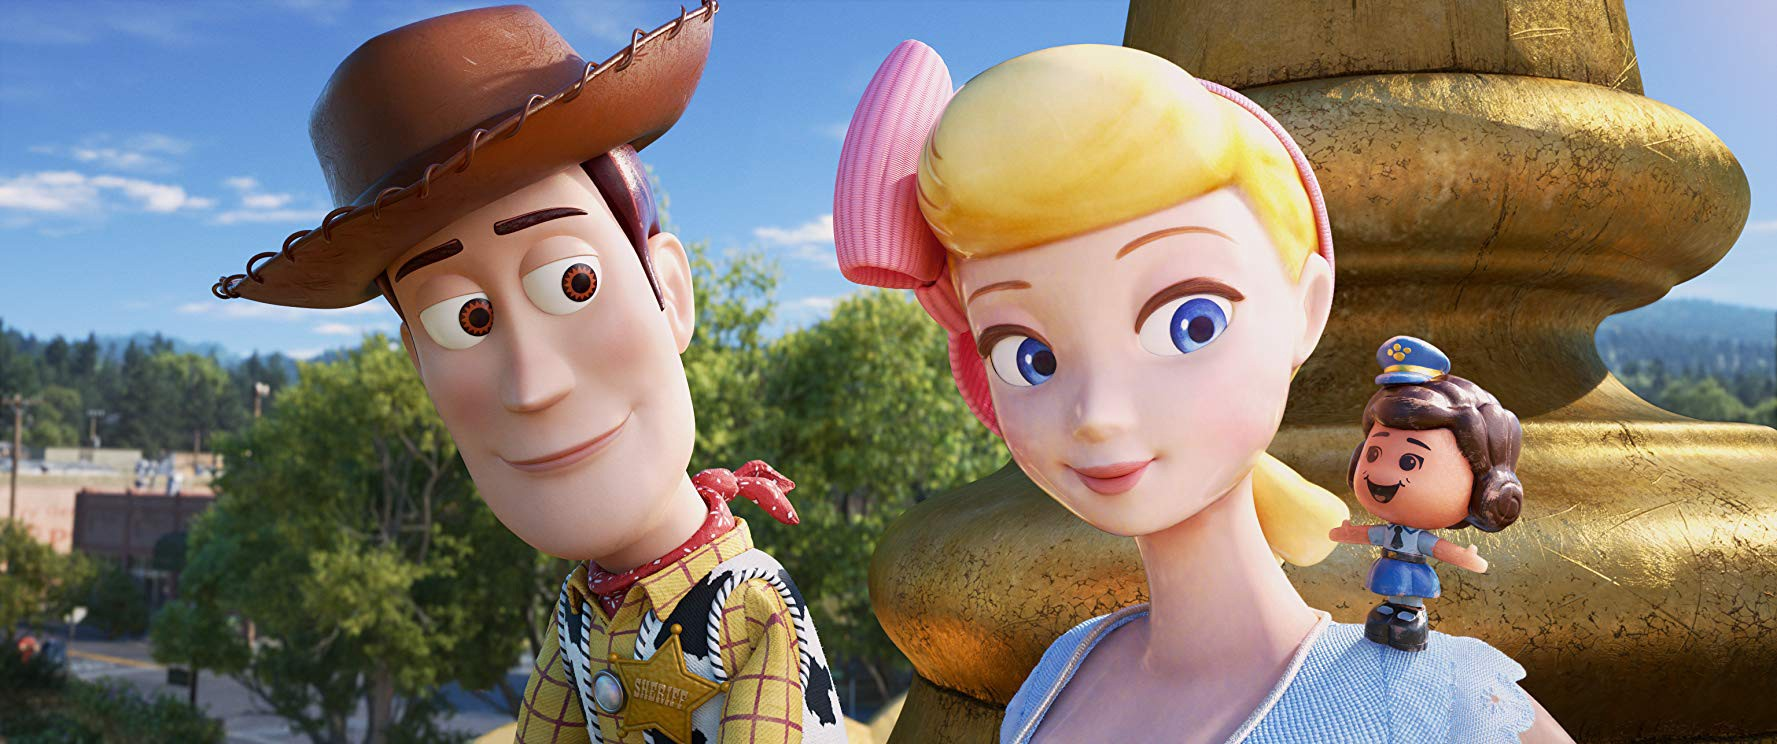 The Art of Moving On: Toy Story 4's Storytelling Magic